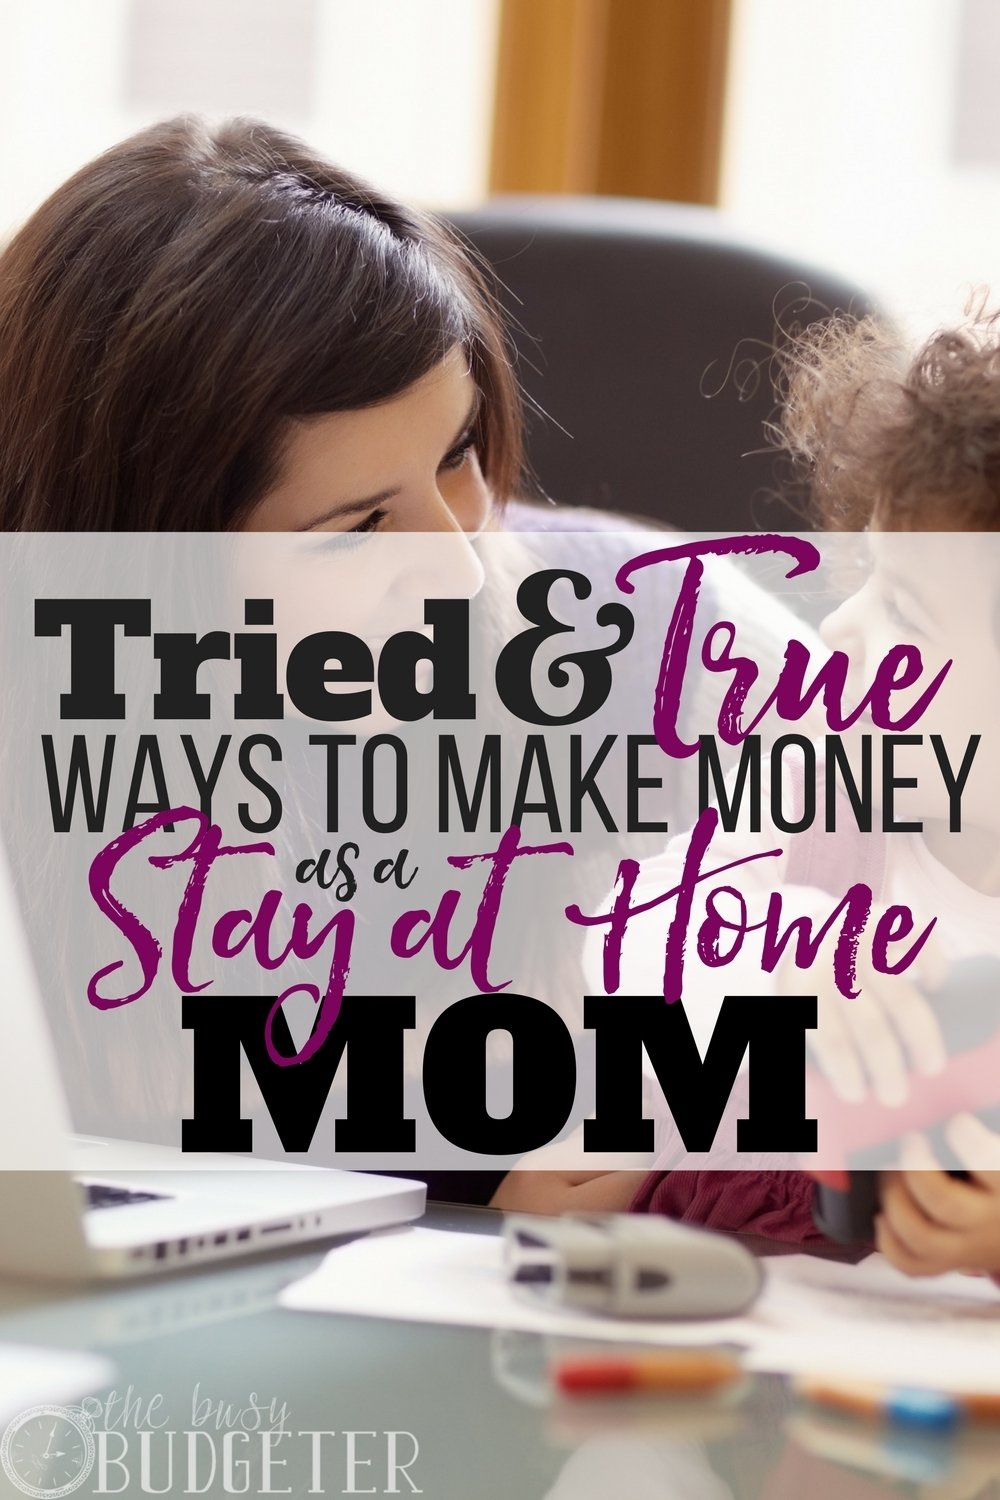 10 Trendy Ideas For Stay At Home Moms To Make Money ways to make money as a stay at home mom tried tested busy 1 2020